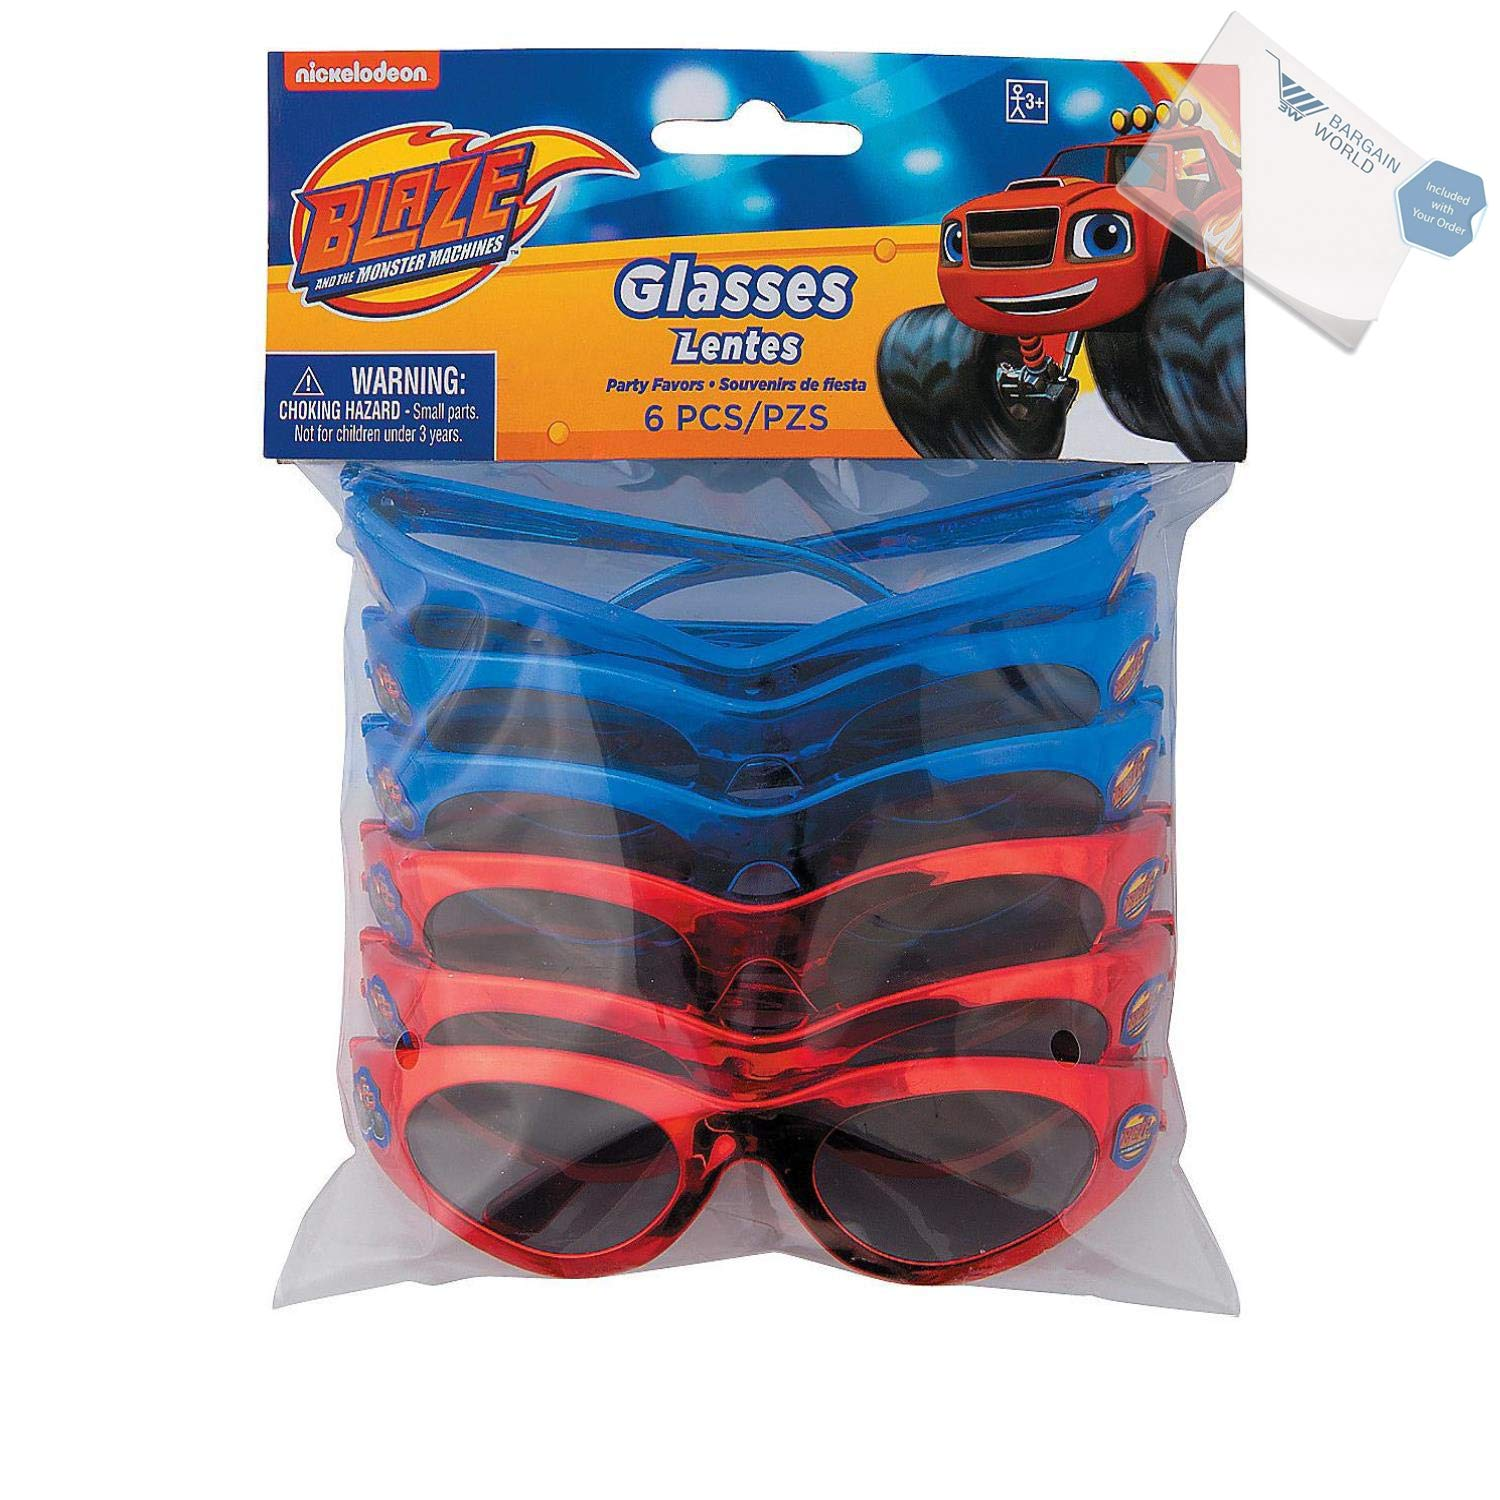 e49f3e8f7924 Amazon.com: Bargain World Blaze and the Monster Machines Sunglasses (With  Sticky Notes): Home & Kitchen